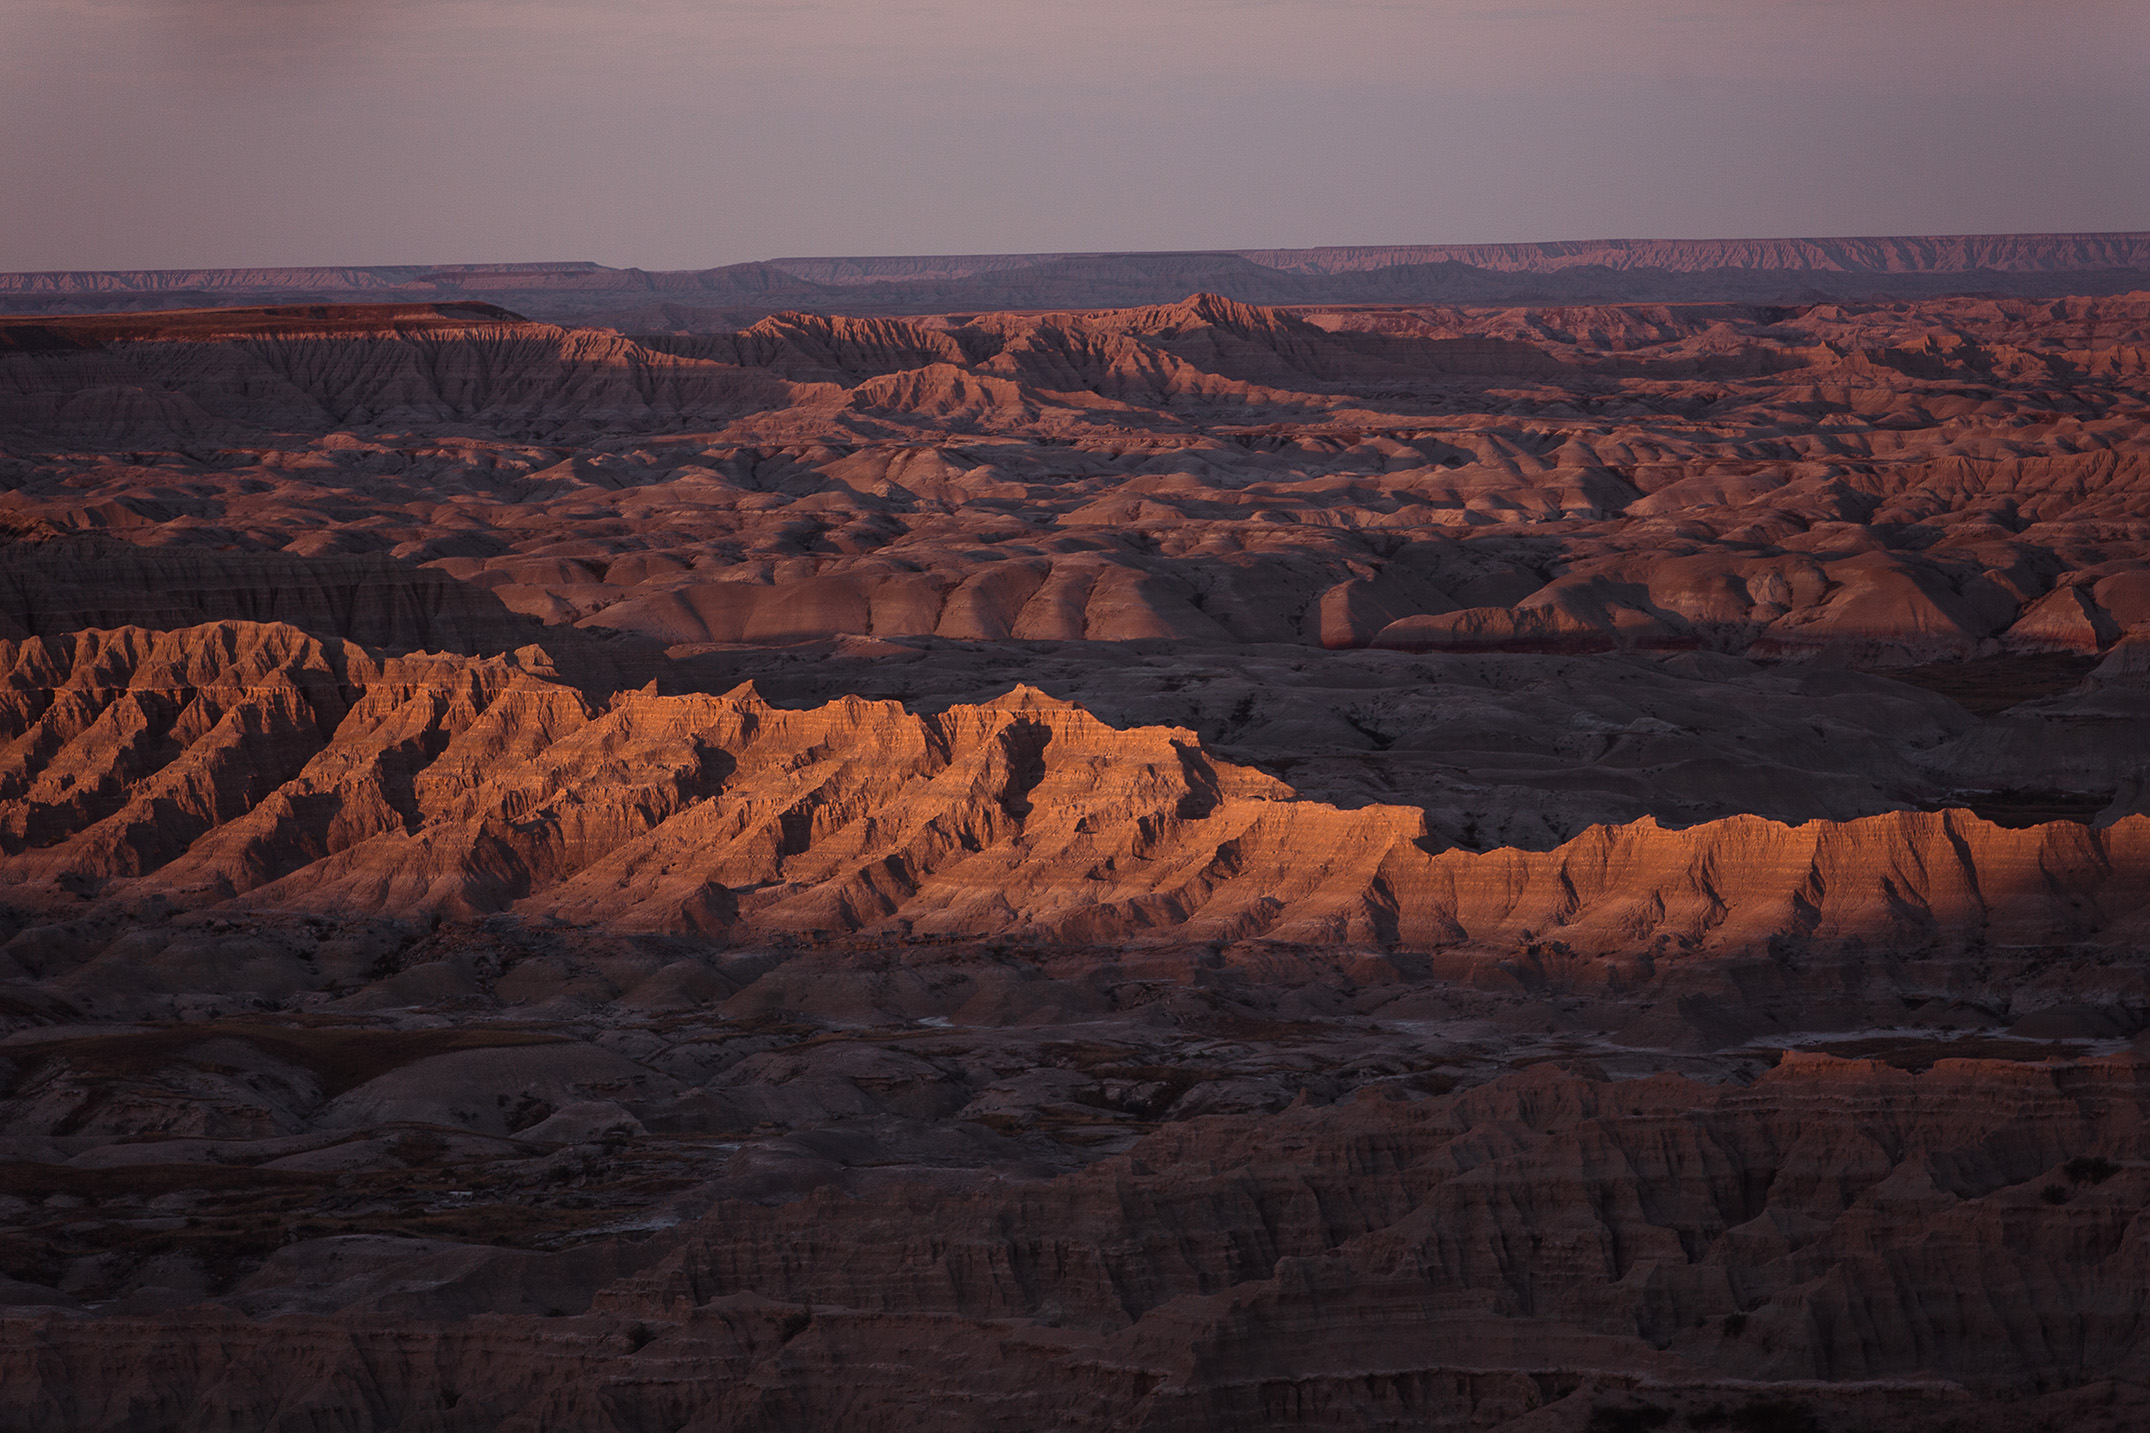 Mike Kane | Badlands, South Dakota | Seattle documentary, editorial, and commercial photography